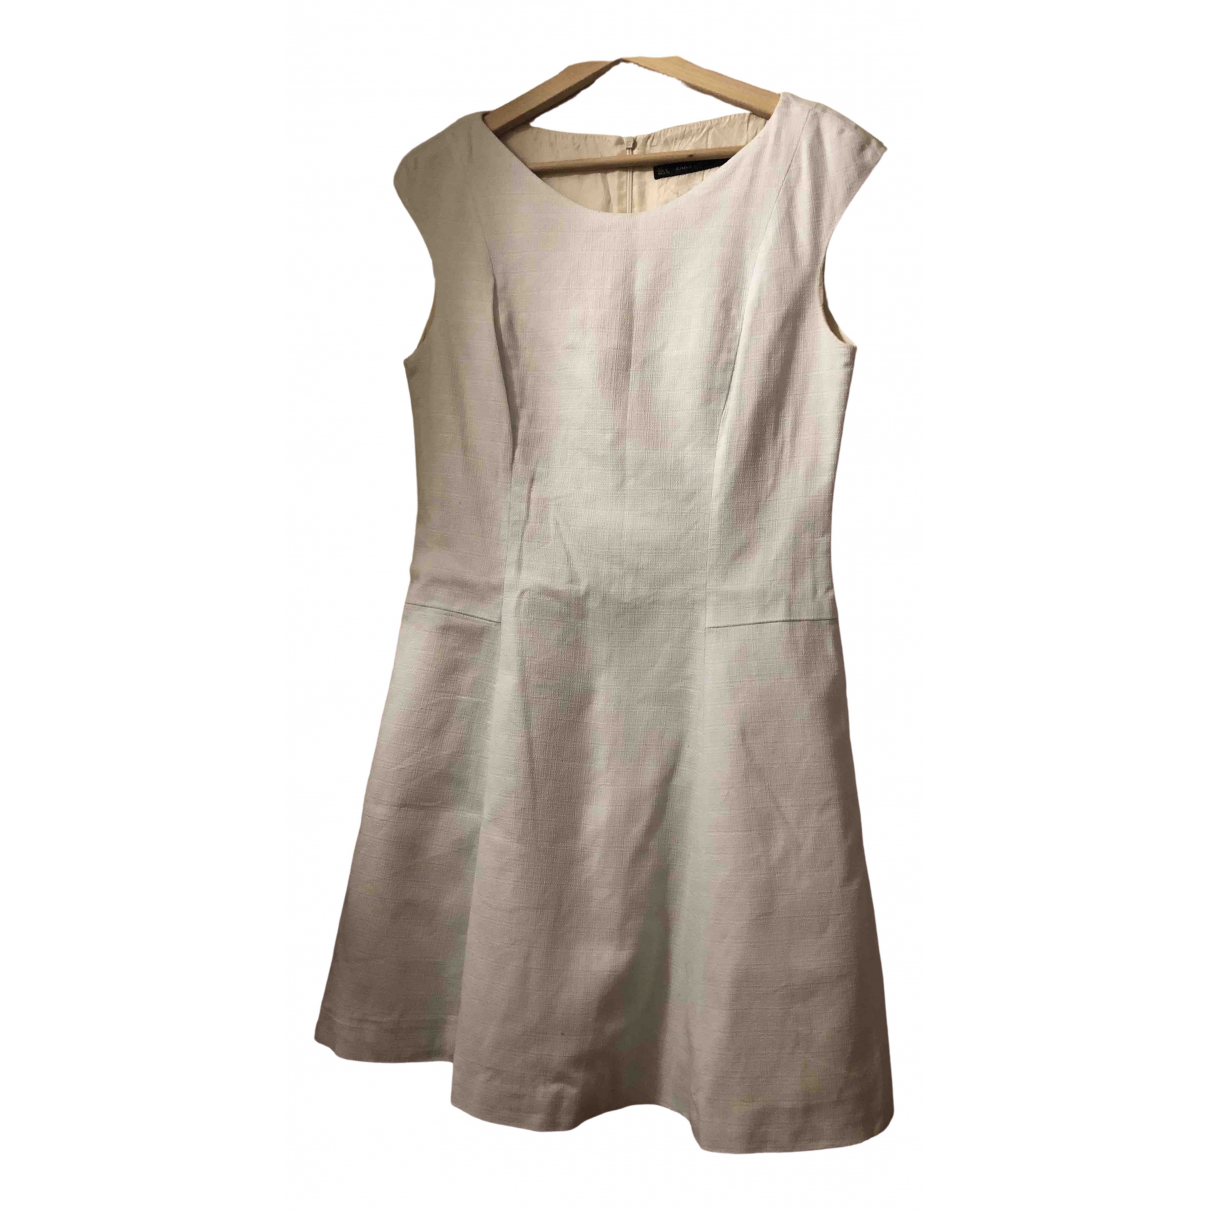 Zara \N White dress for Women 40 FR